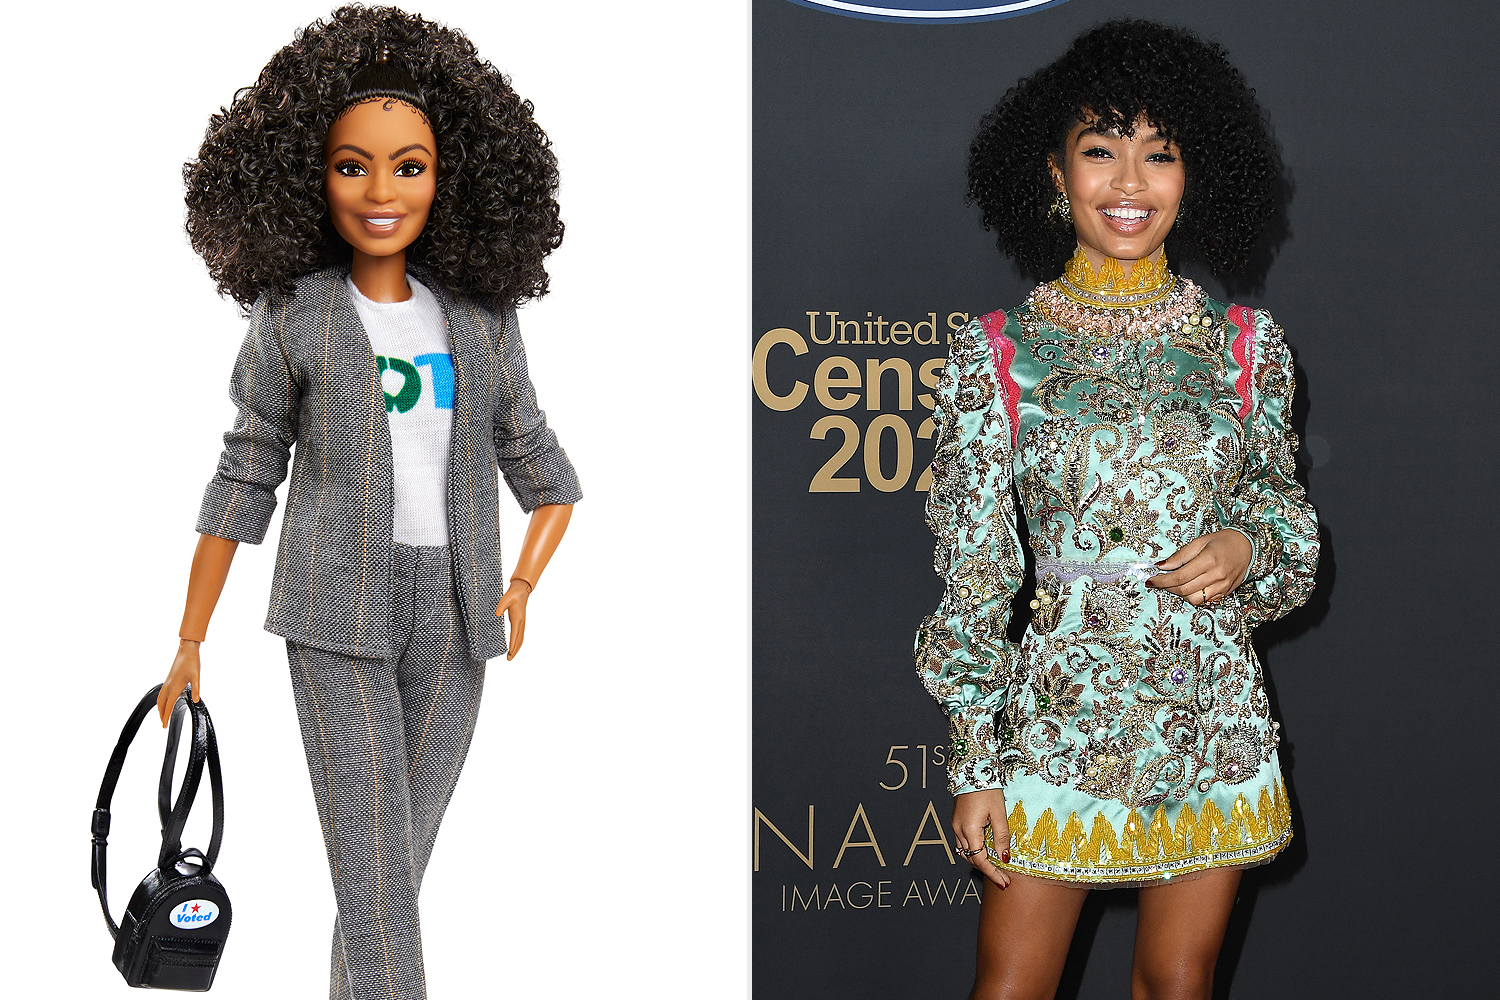 "Yara Shahidi Barbie®️ Doll | Amazon.com | $29.99 The Yara Shahidi Barbie®️ Doll is fully posable and made in the actress, model, and activist's likeness. She is shown in her ""Vote"" shirt, a smart gray suit, and finishes her look with an ""I Voted"" Sticker. Photos courtesy of Mattel"